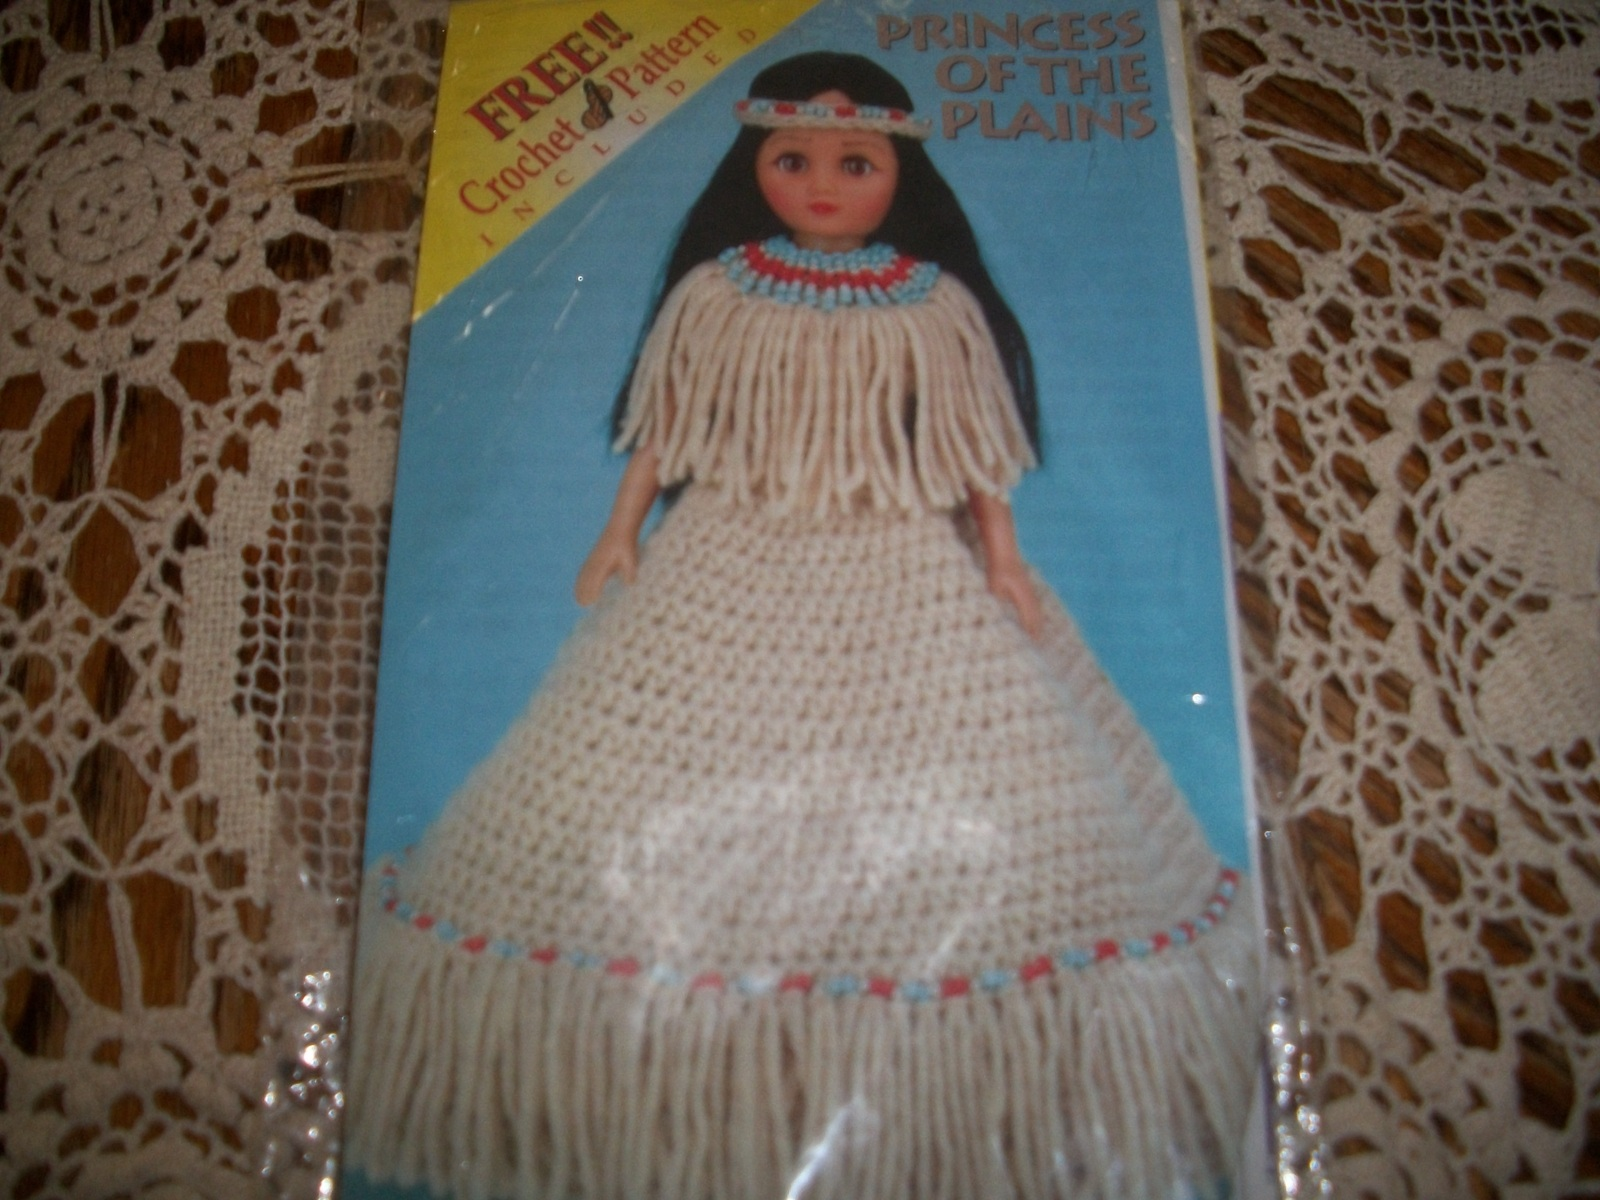 Primary image for Indian Princess Of The Plains & Southern Belle Crochet Dress Patterns